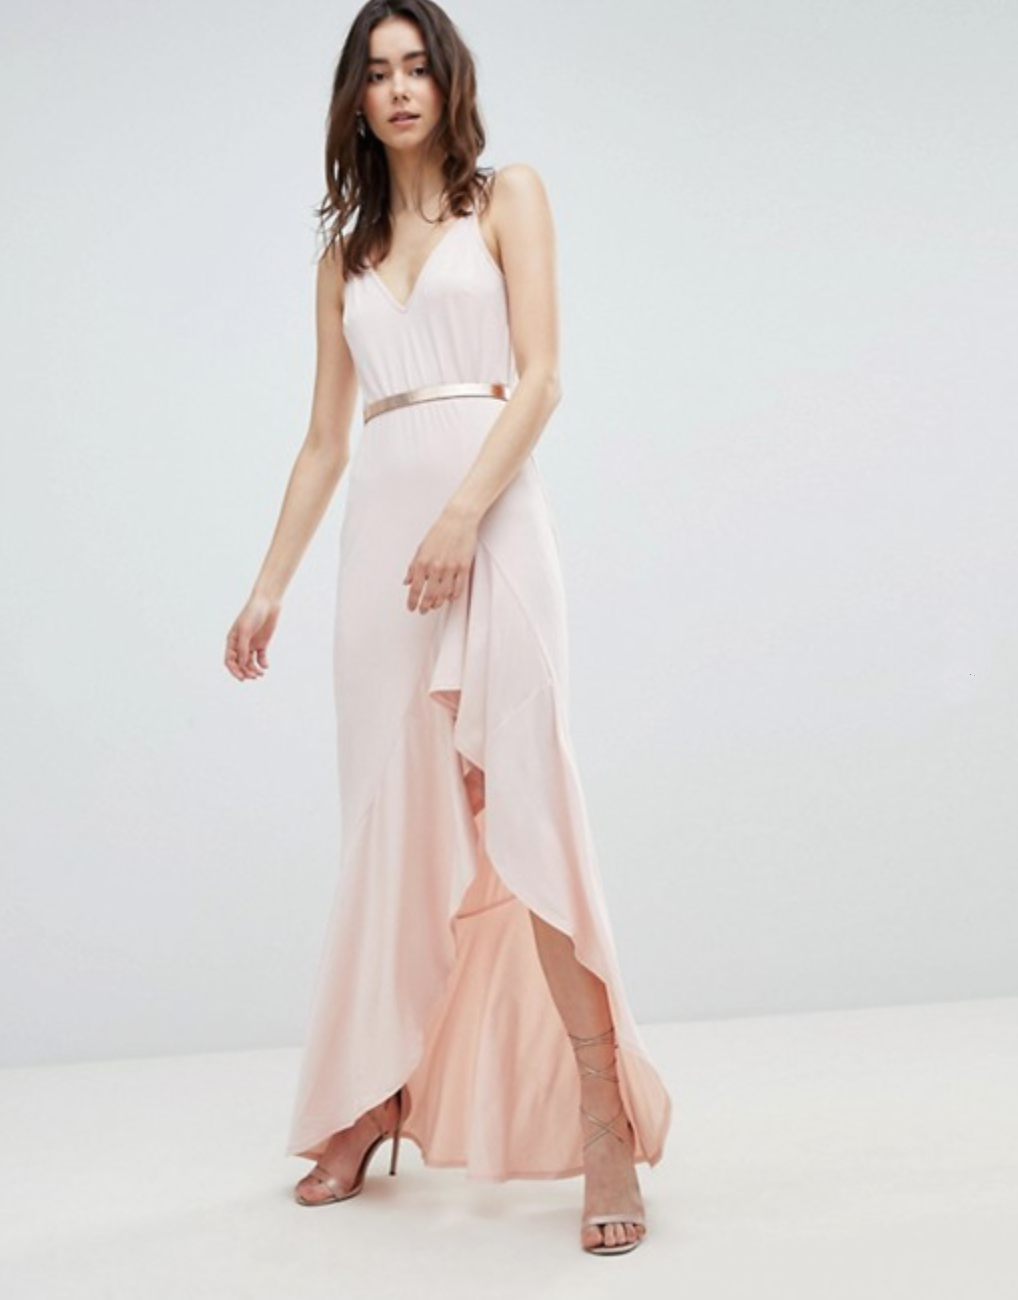 Cami Maxi Dress with Ruffle Side Split and Gold Belt By ASOS